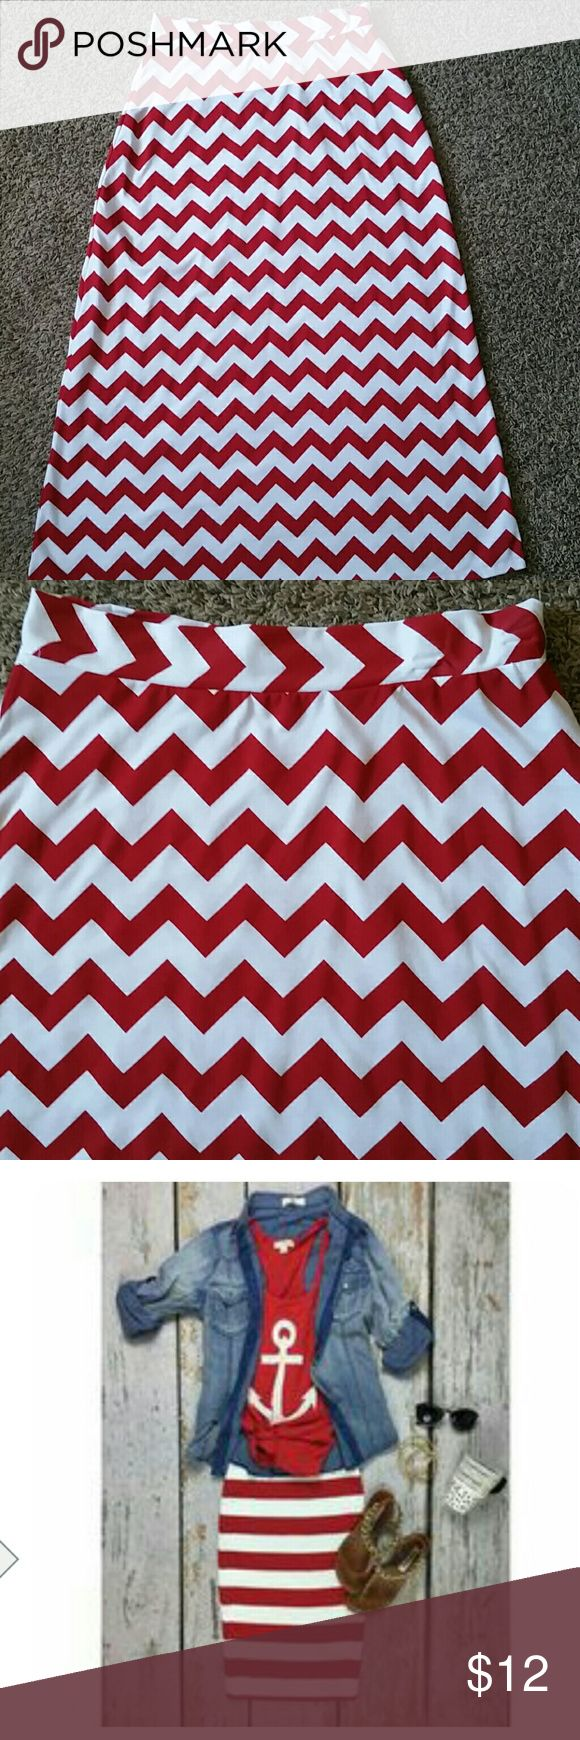 Chevron maxi skirt Red and white chevron maxi skirt.Looks brand new.Very adorable! ( 2nd pic is for ideas only ) Skirts Maxi